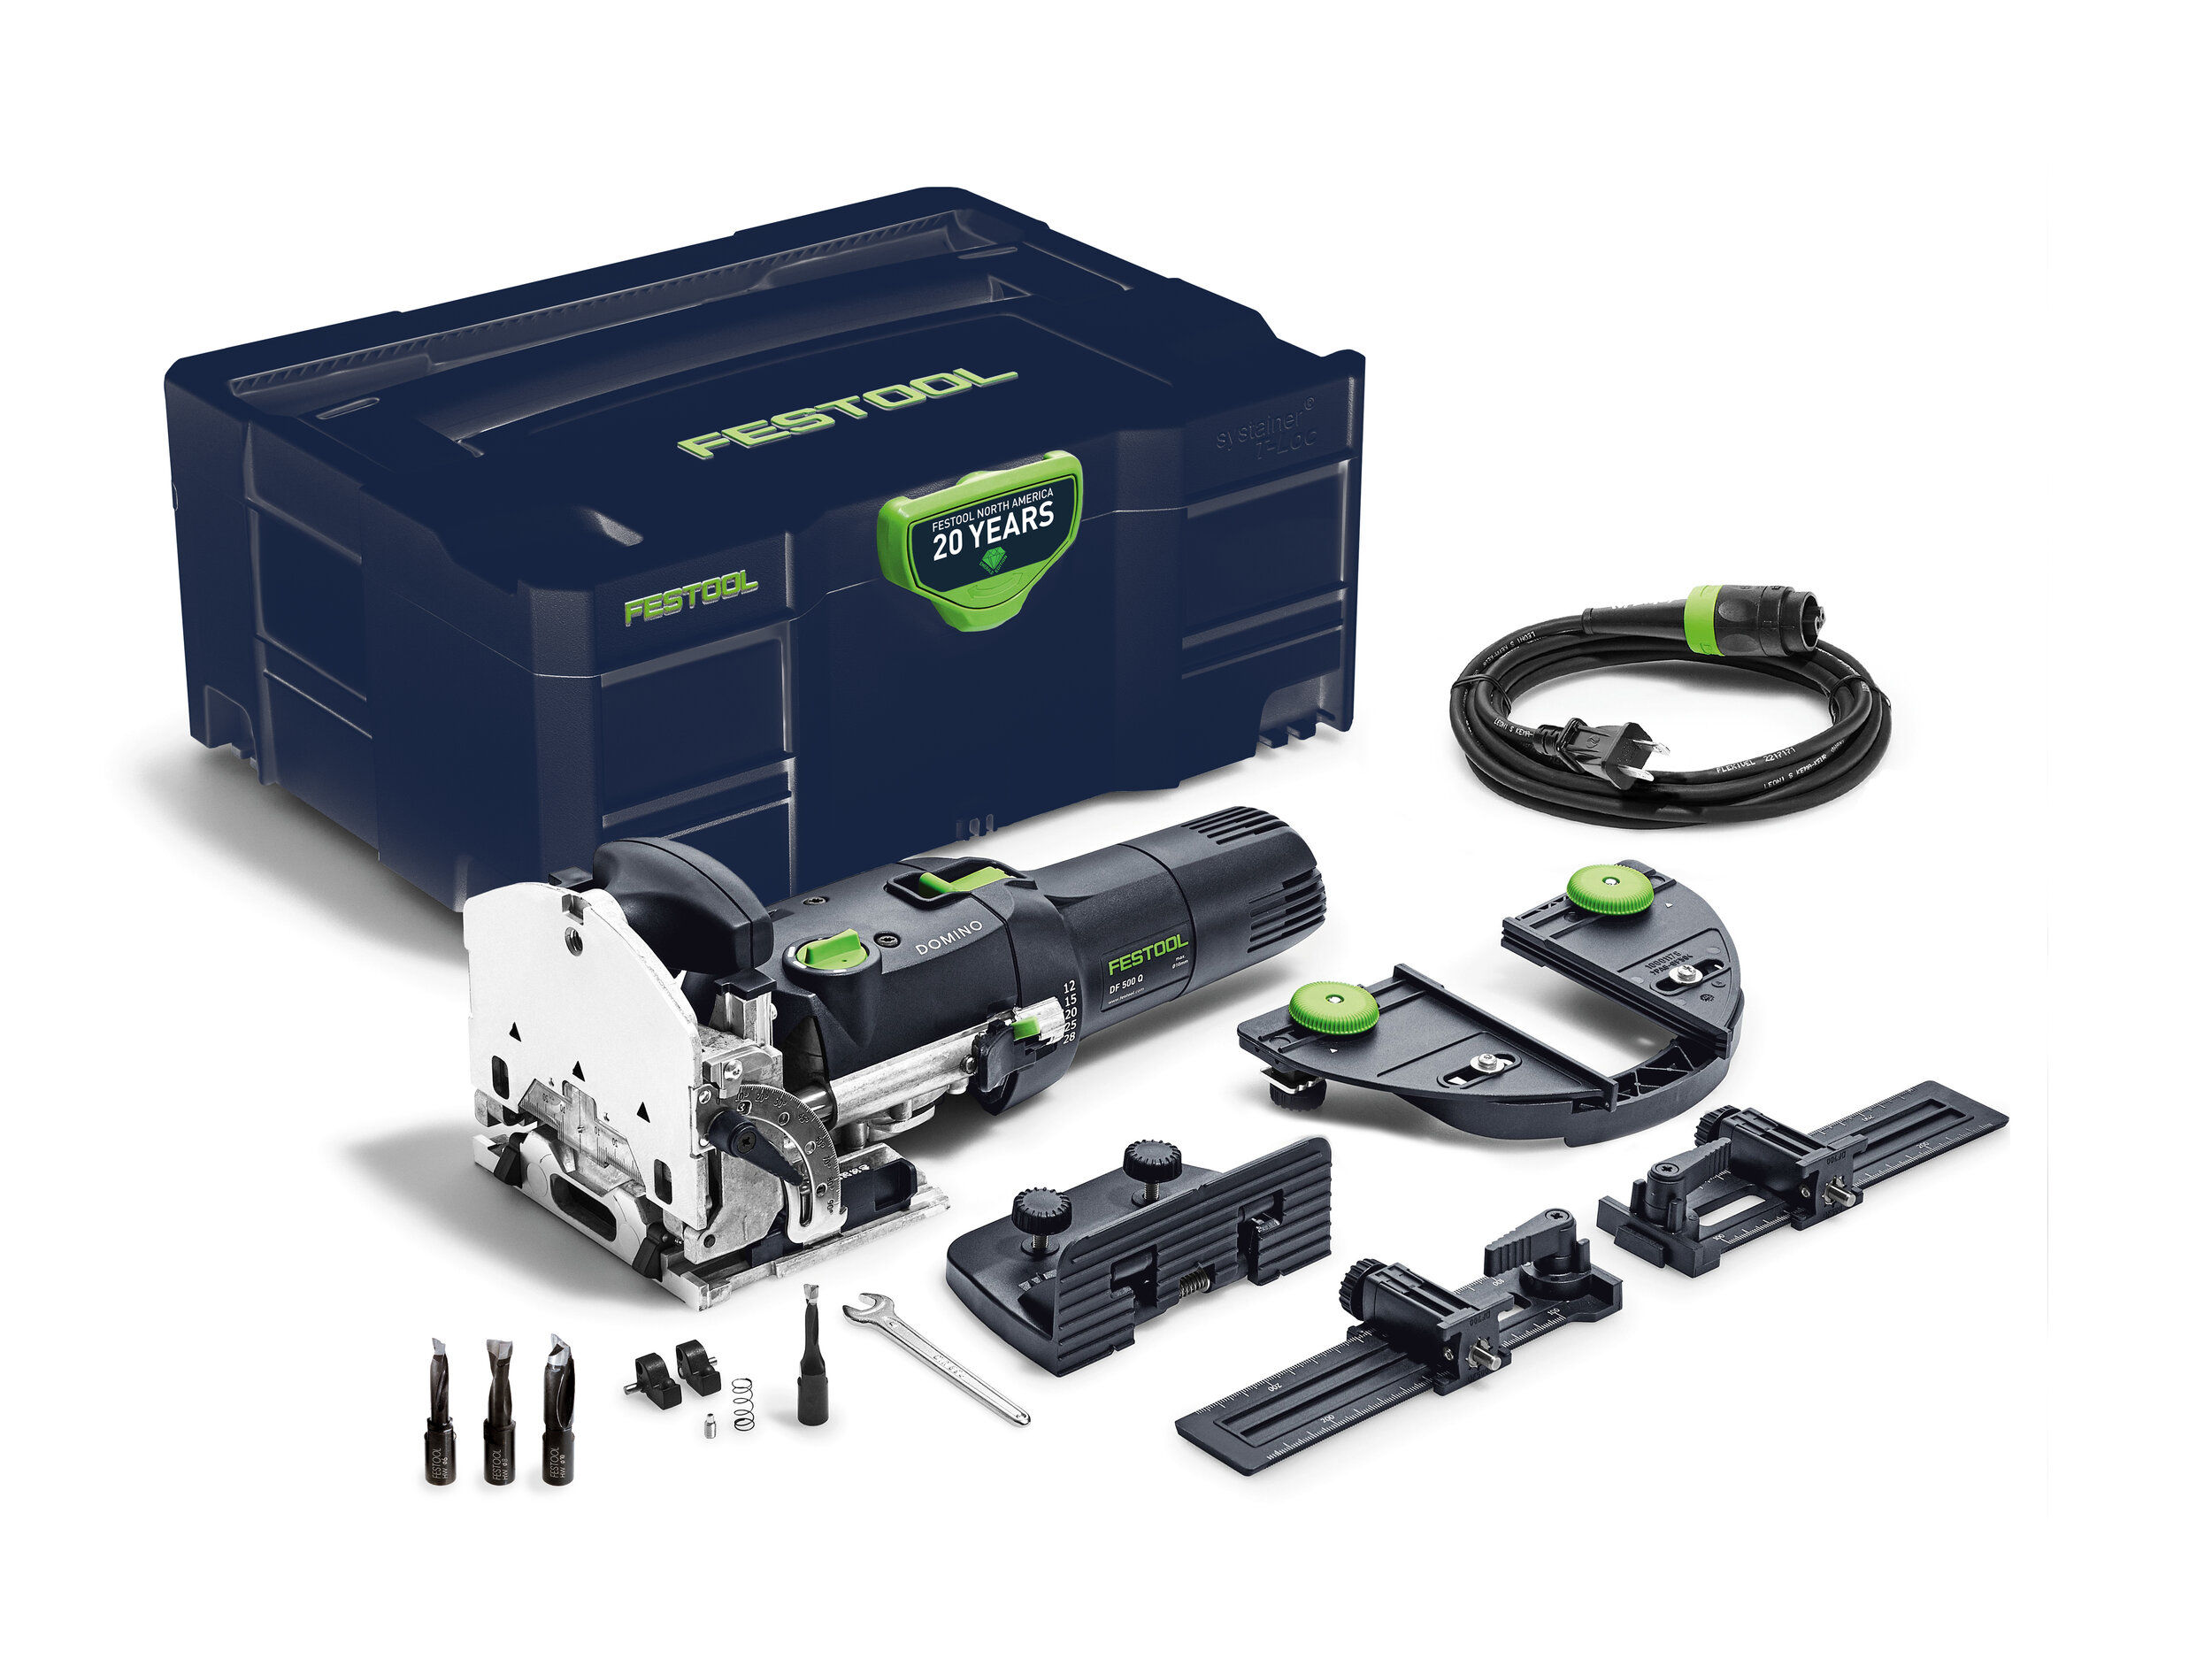 - Domino DF 500 $1,040Includes D6, D8 and D10 CuttersThe Domino DF 500 Emerald Edition includes the Emerald Blue Systainer, D6, D8 and D10 Cutters, a $136 value.